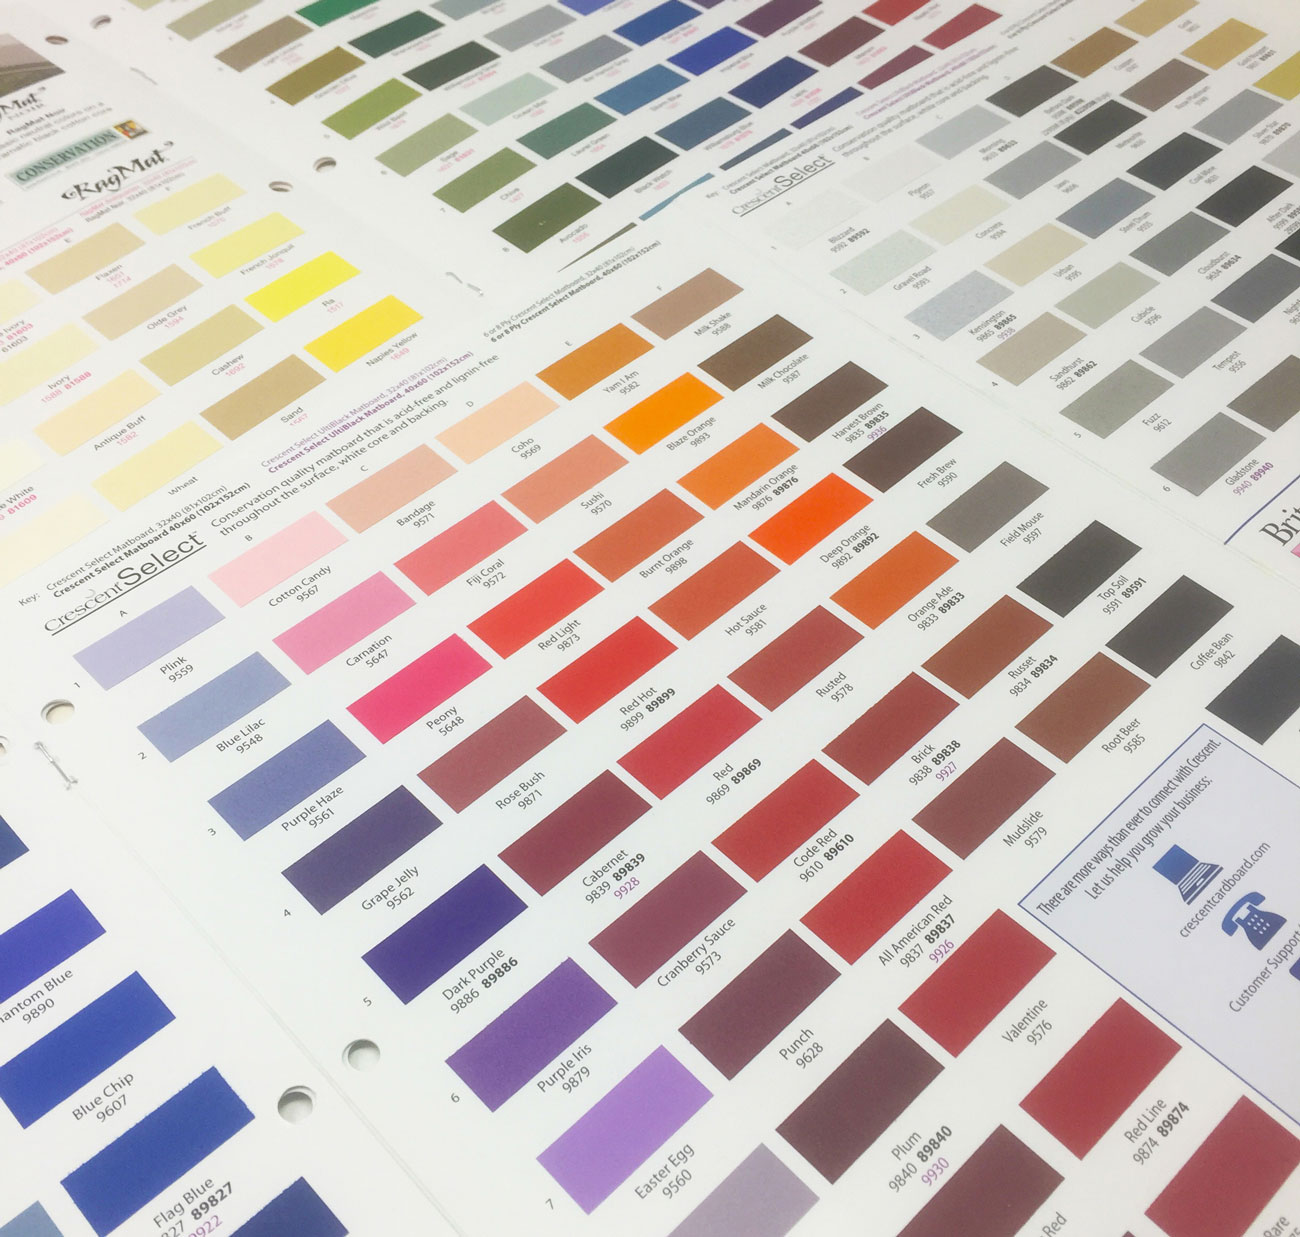 Crescent's huge selection of colors